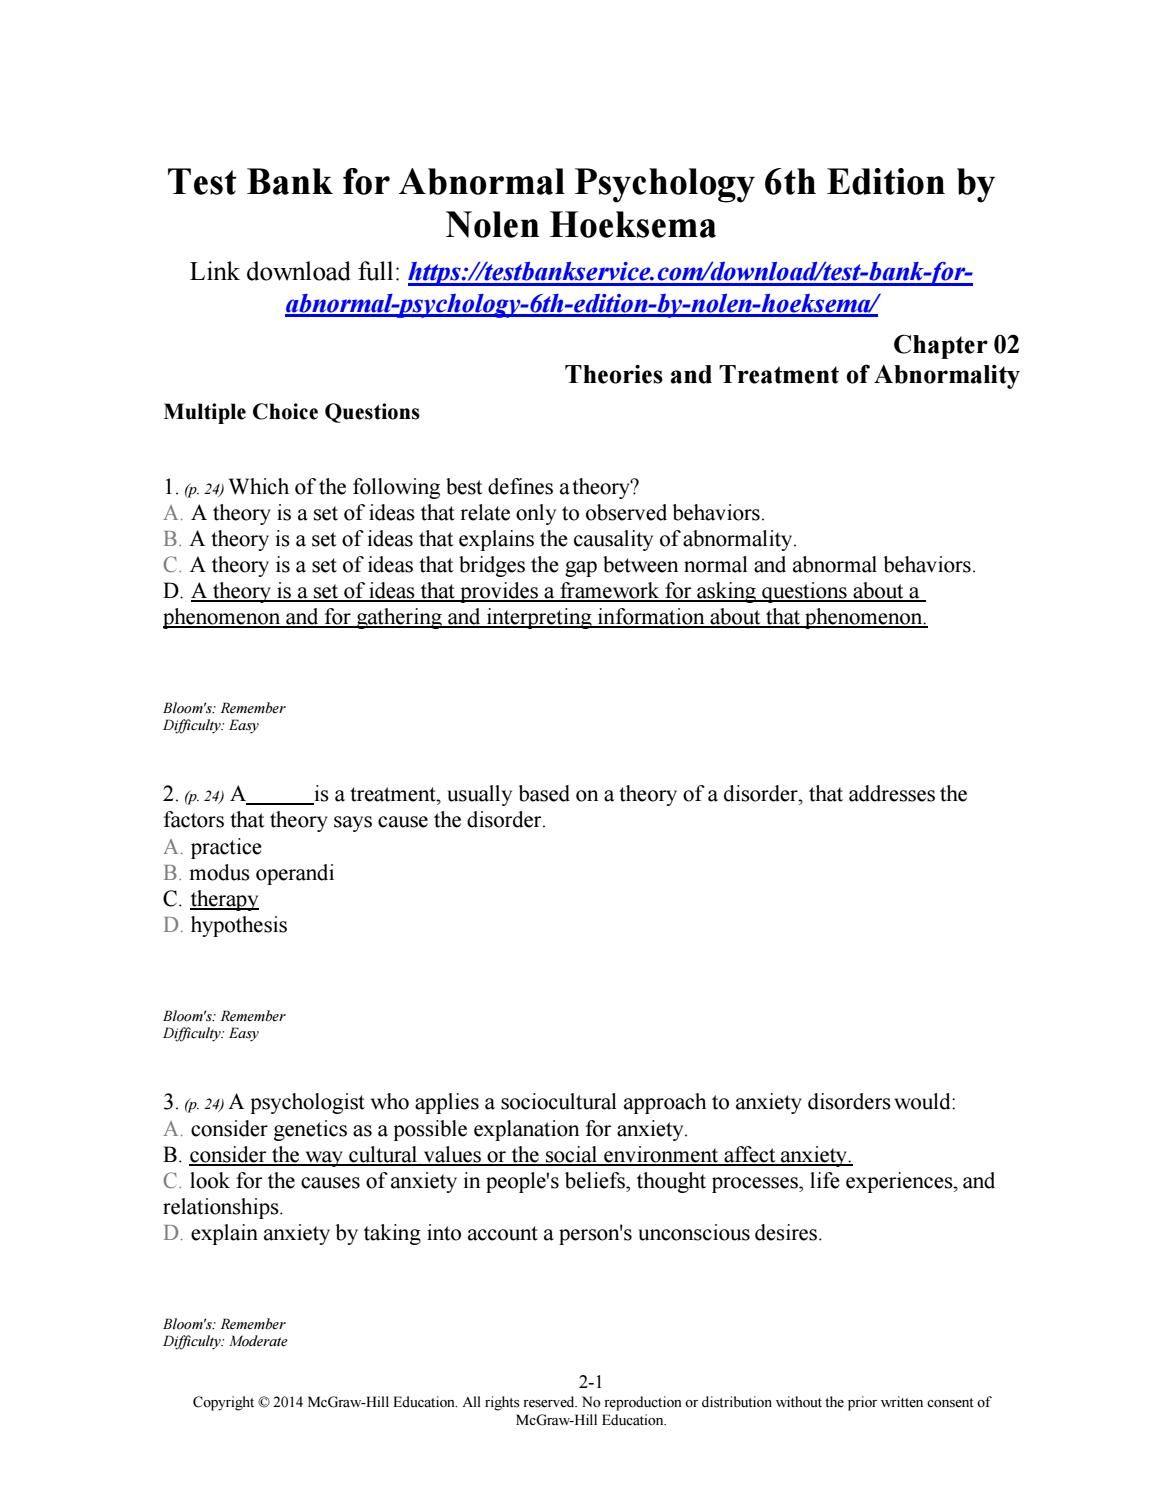 ... study guide ebook Array - download test bank for abnormal psychology  6th edition by nolen rh pinterest com